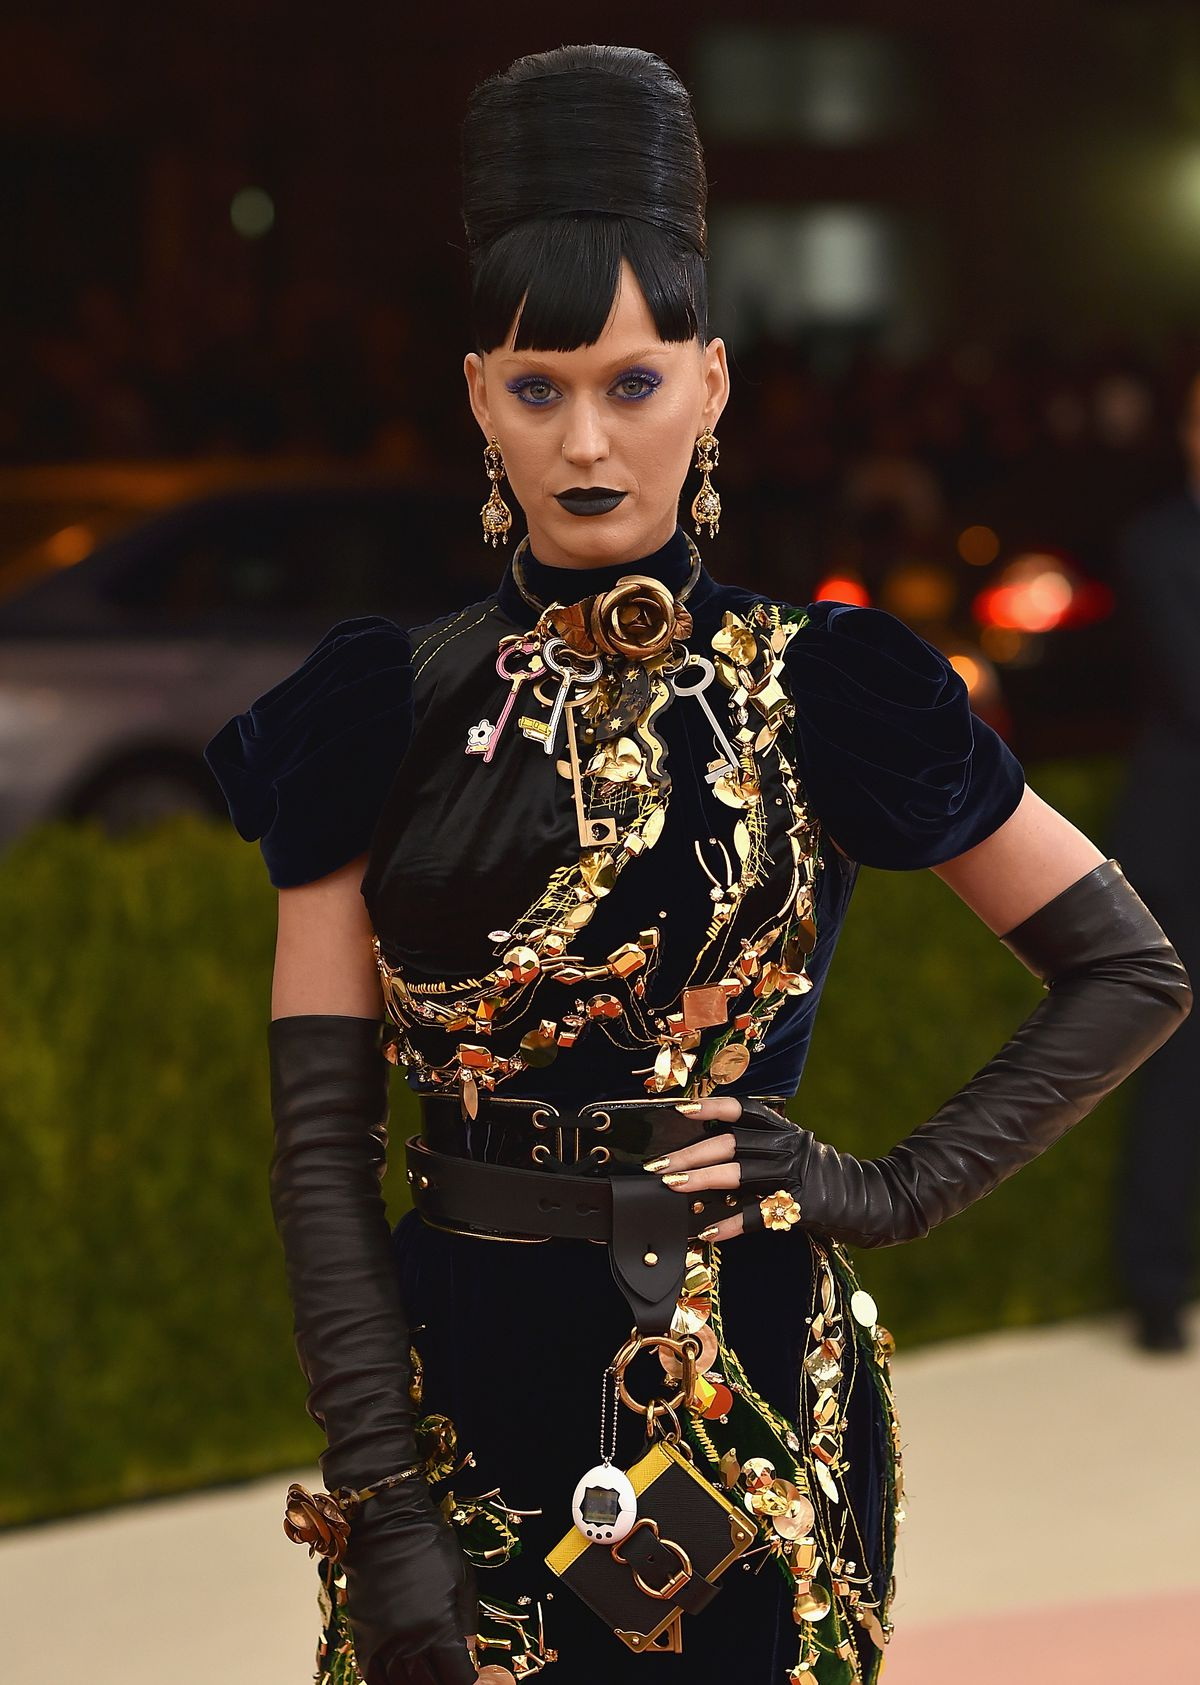 Katy Perry Dimitrios Kambouris/Getty Images